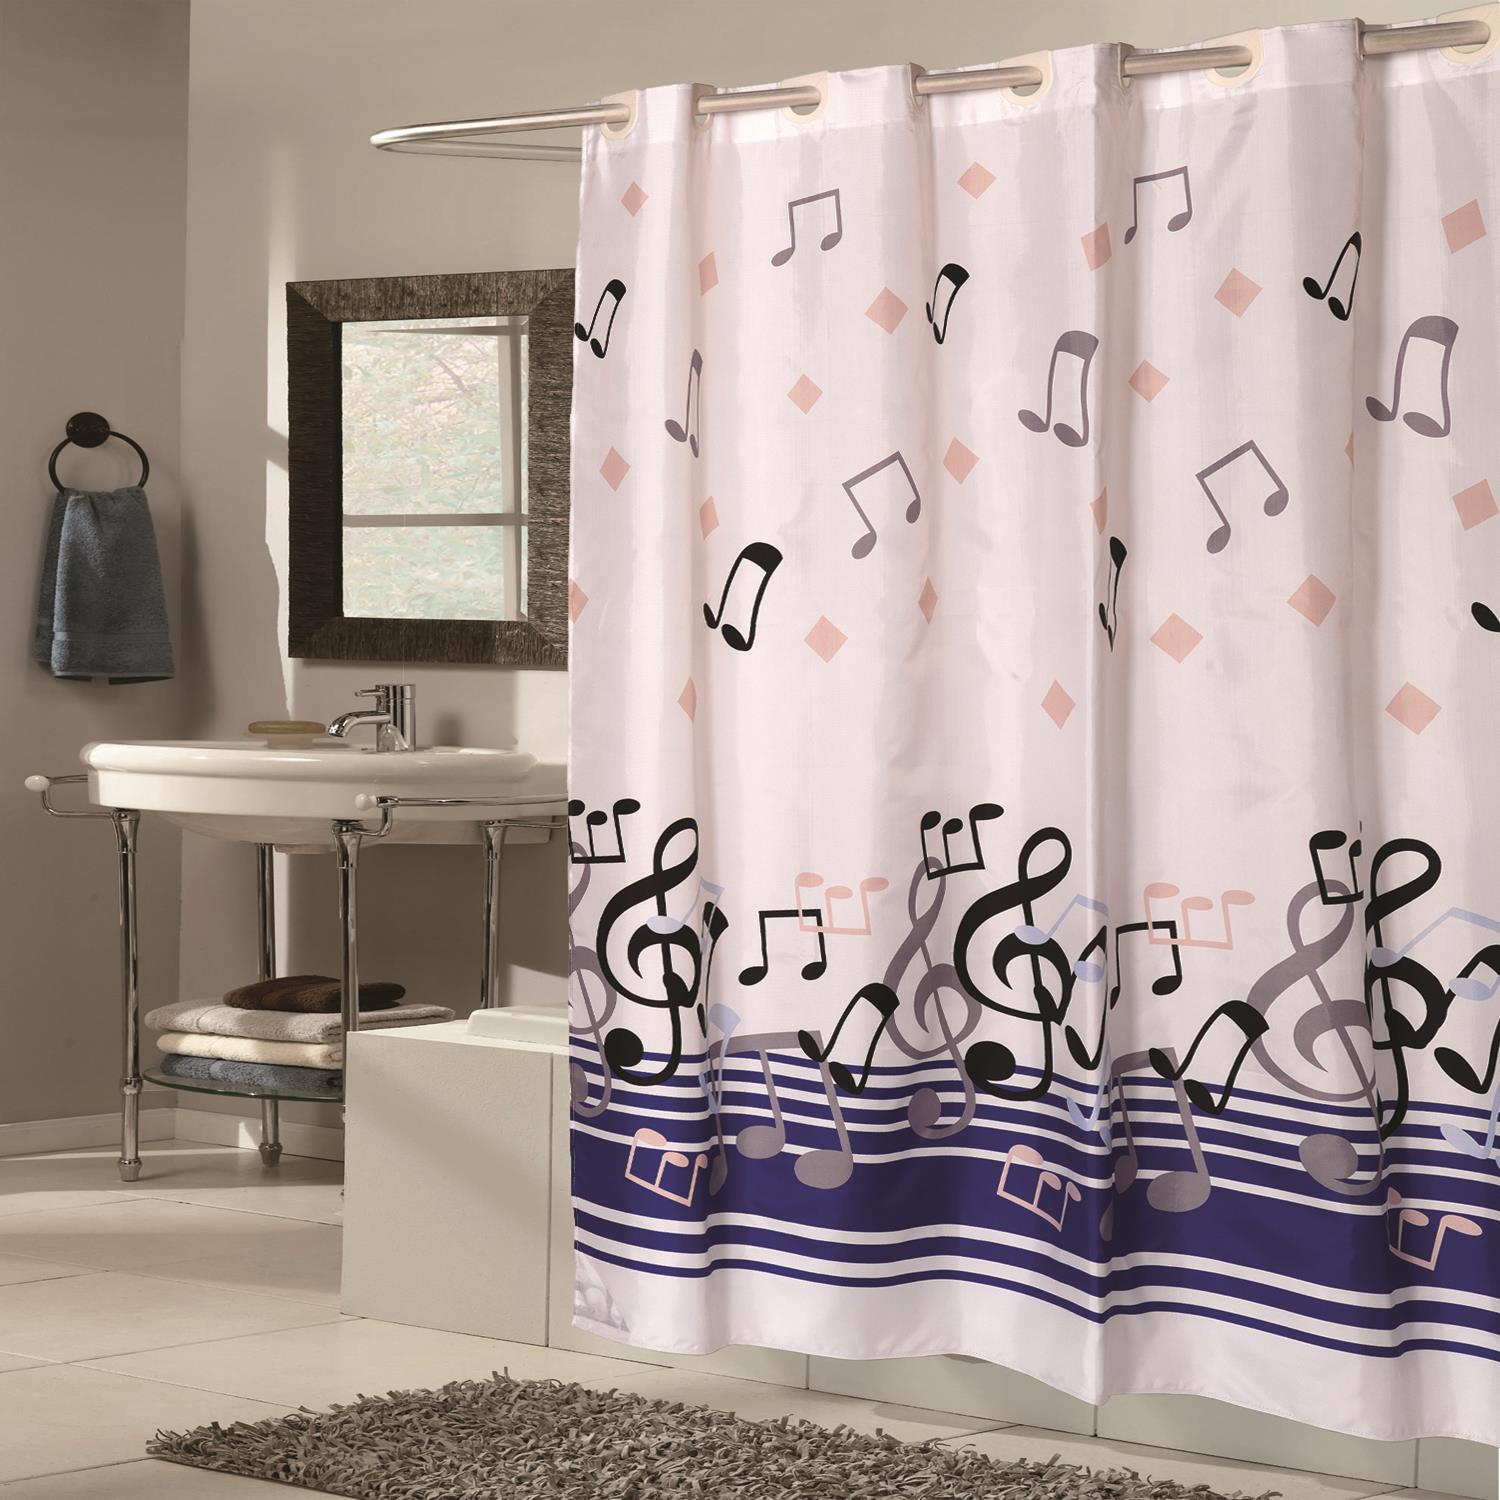 108 Long Shower Curtain Details About Carnation Home Extra Wide Ez On